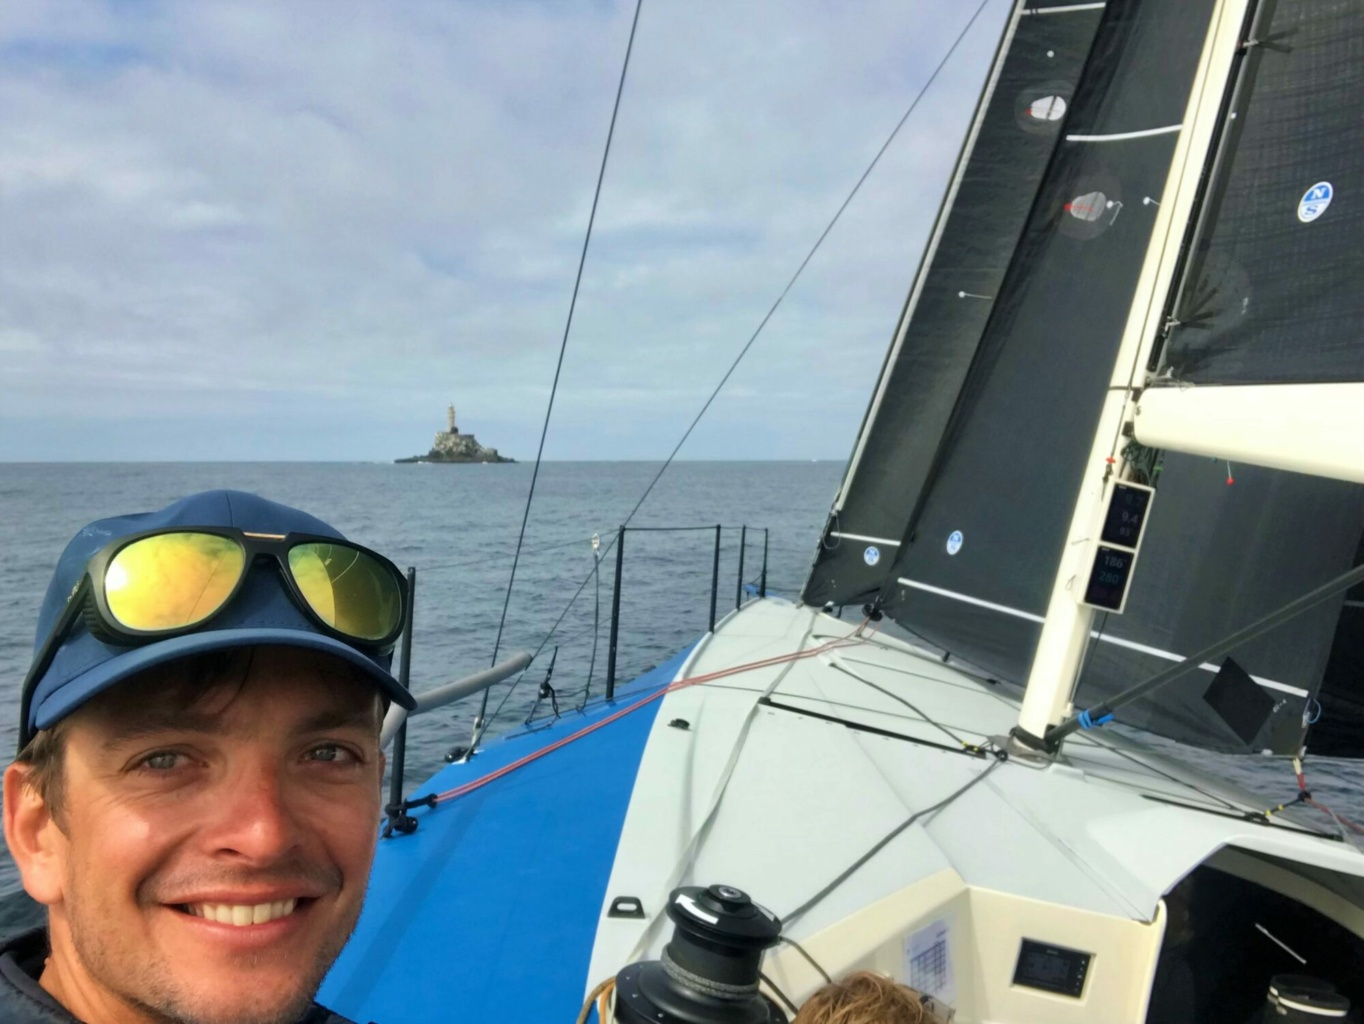 Ben Saxton racing onboard Oystercatcher and soon to round the prestigious Fastnet Rock